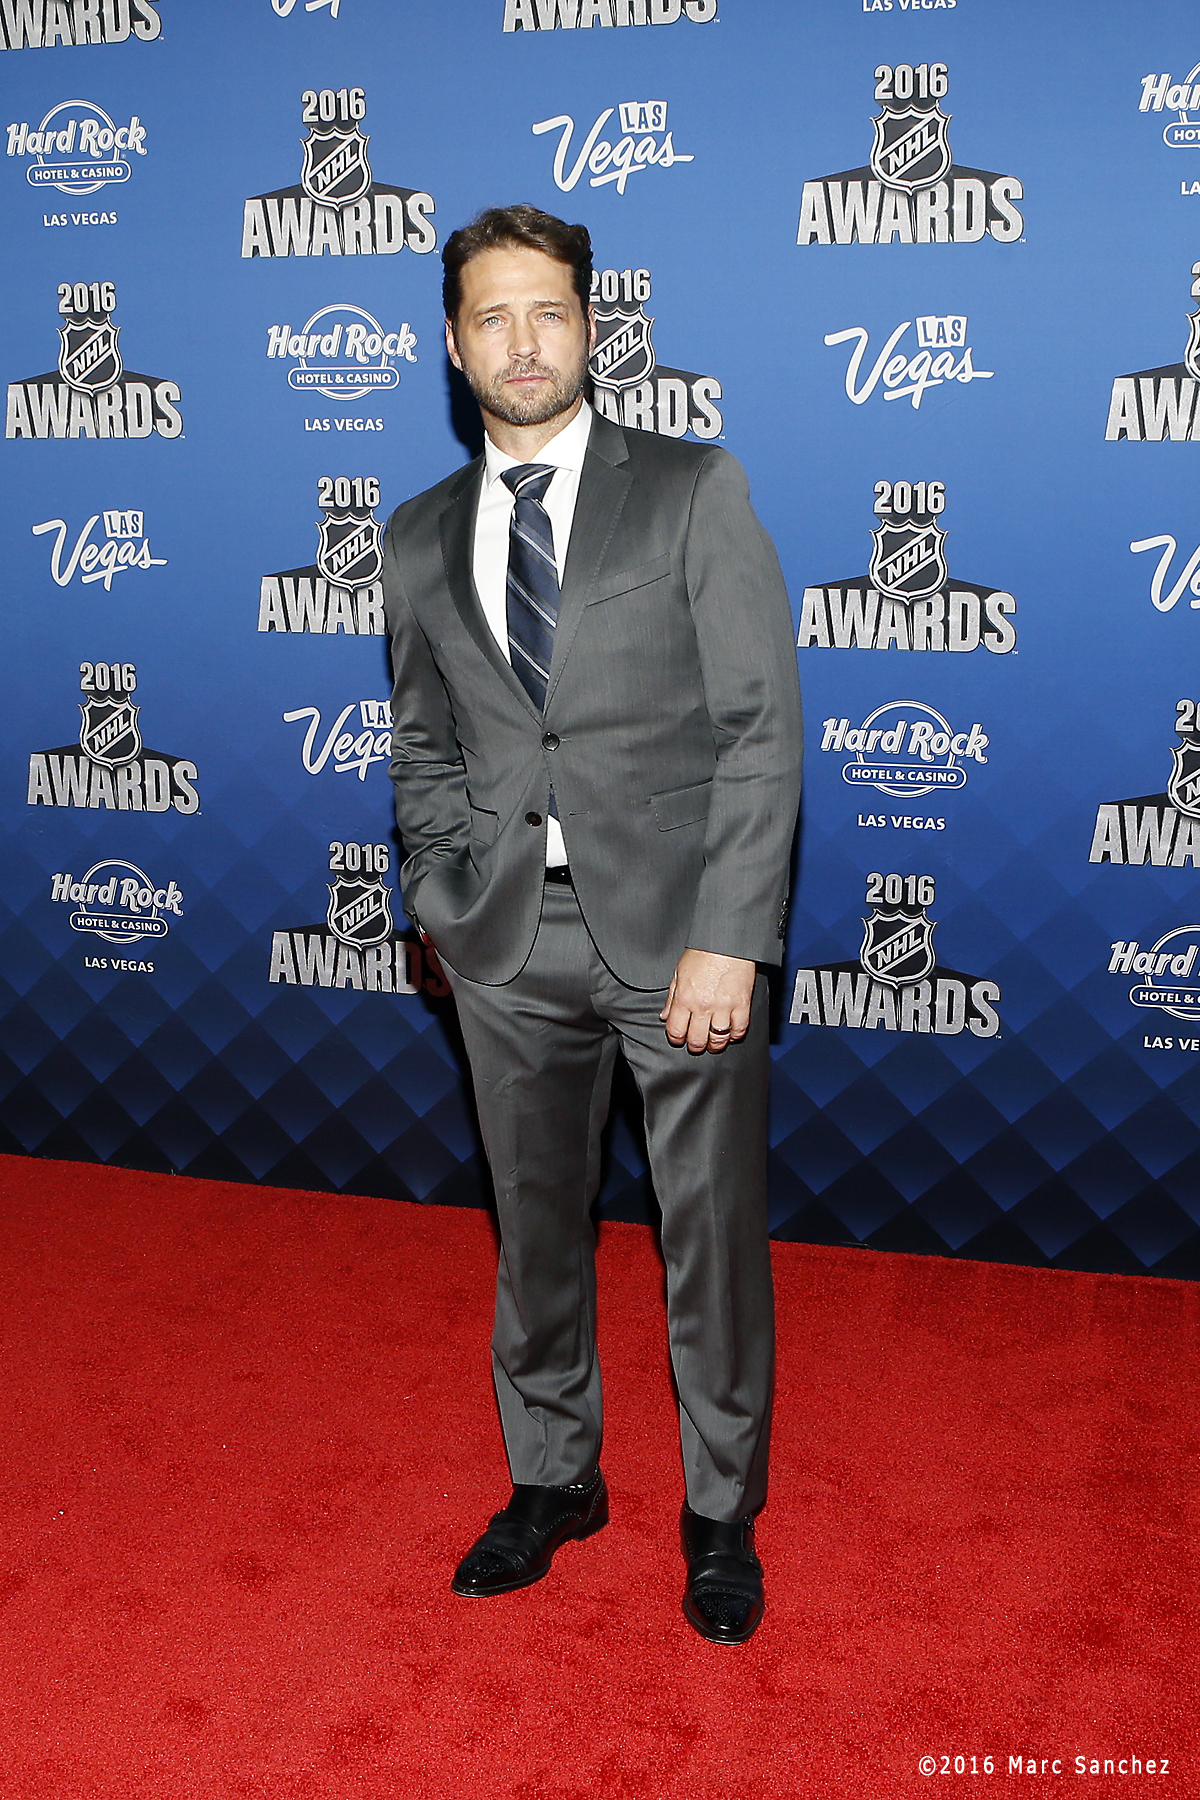 2016 June 22:  Actor and director Jason Priestley poses for a photograph on the red carpet during the 2016 NHL Awards at the Hard Rock Hotel and Casino in Las Vegas, Nevada. (Photo by Marc Sanchez/Icon Sportswire)